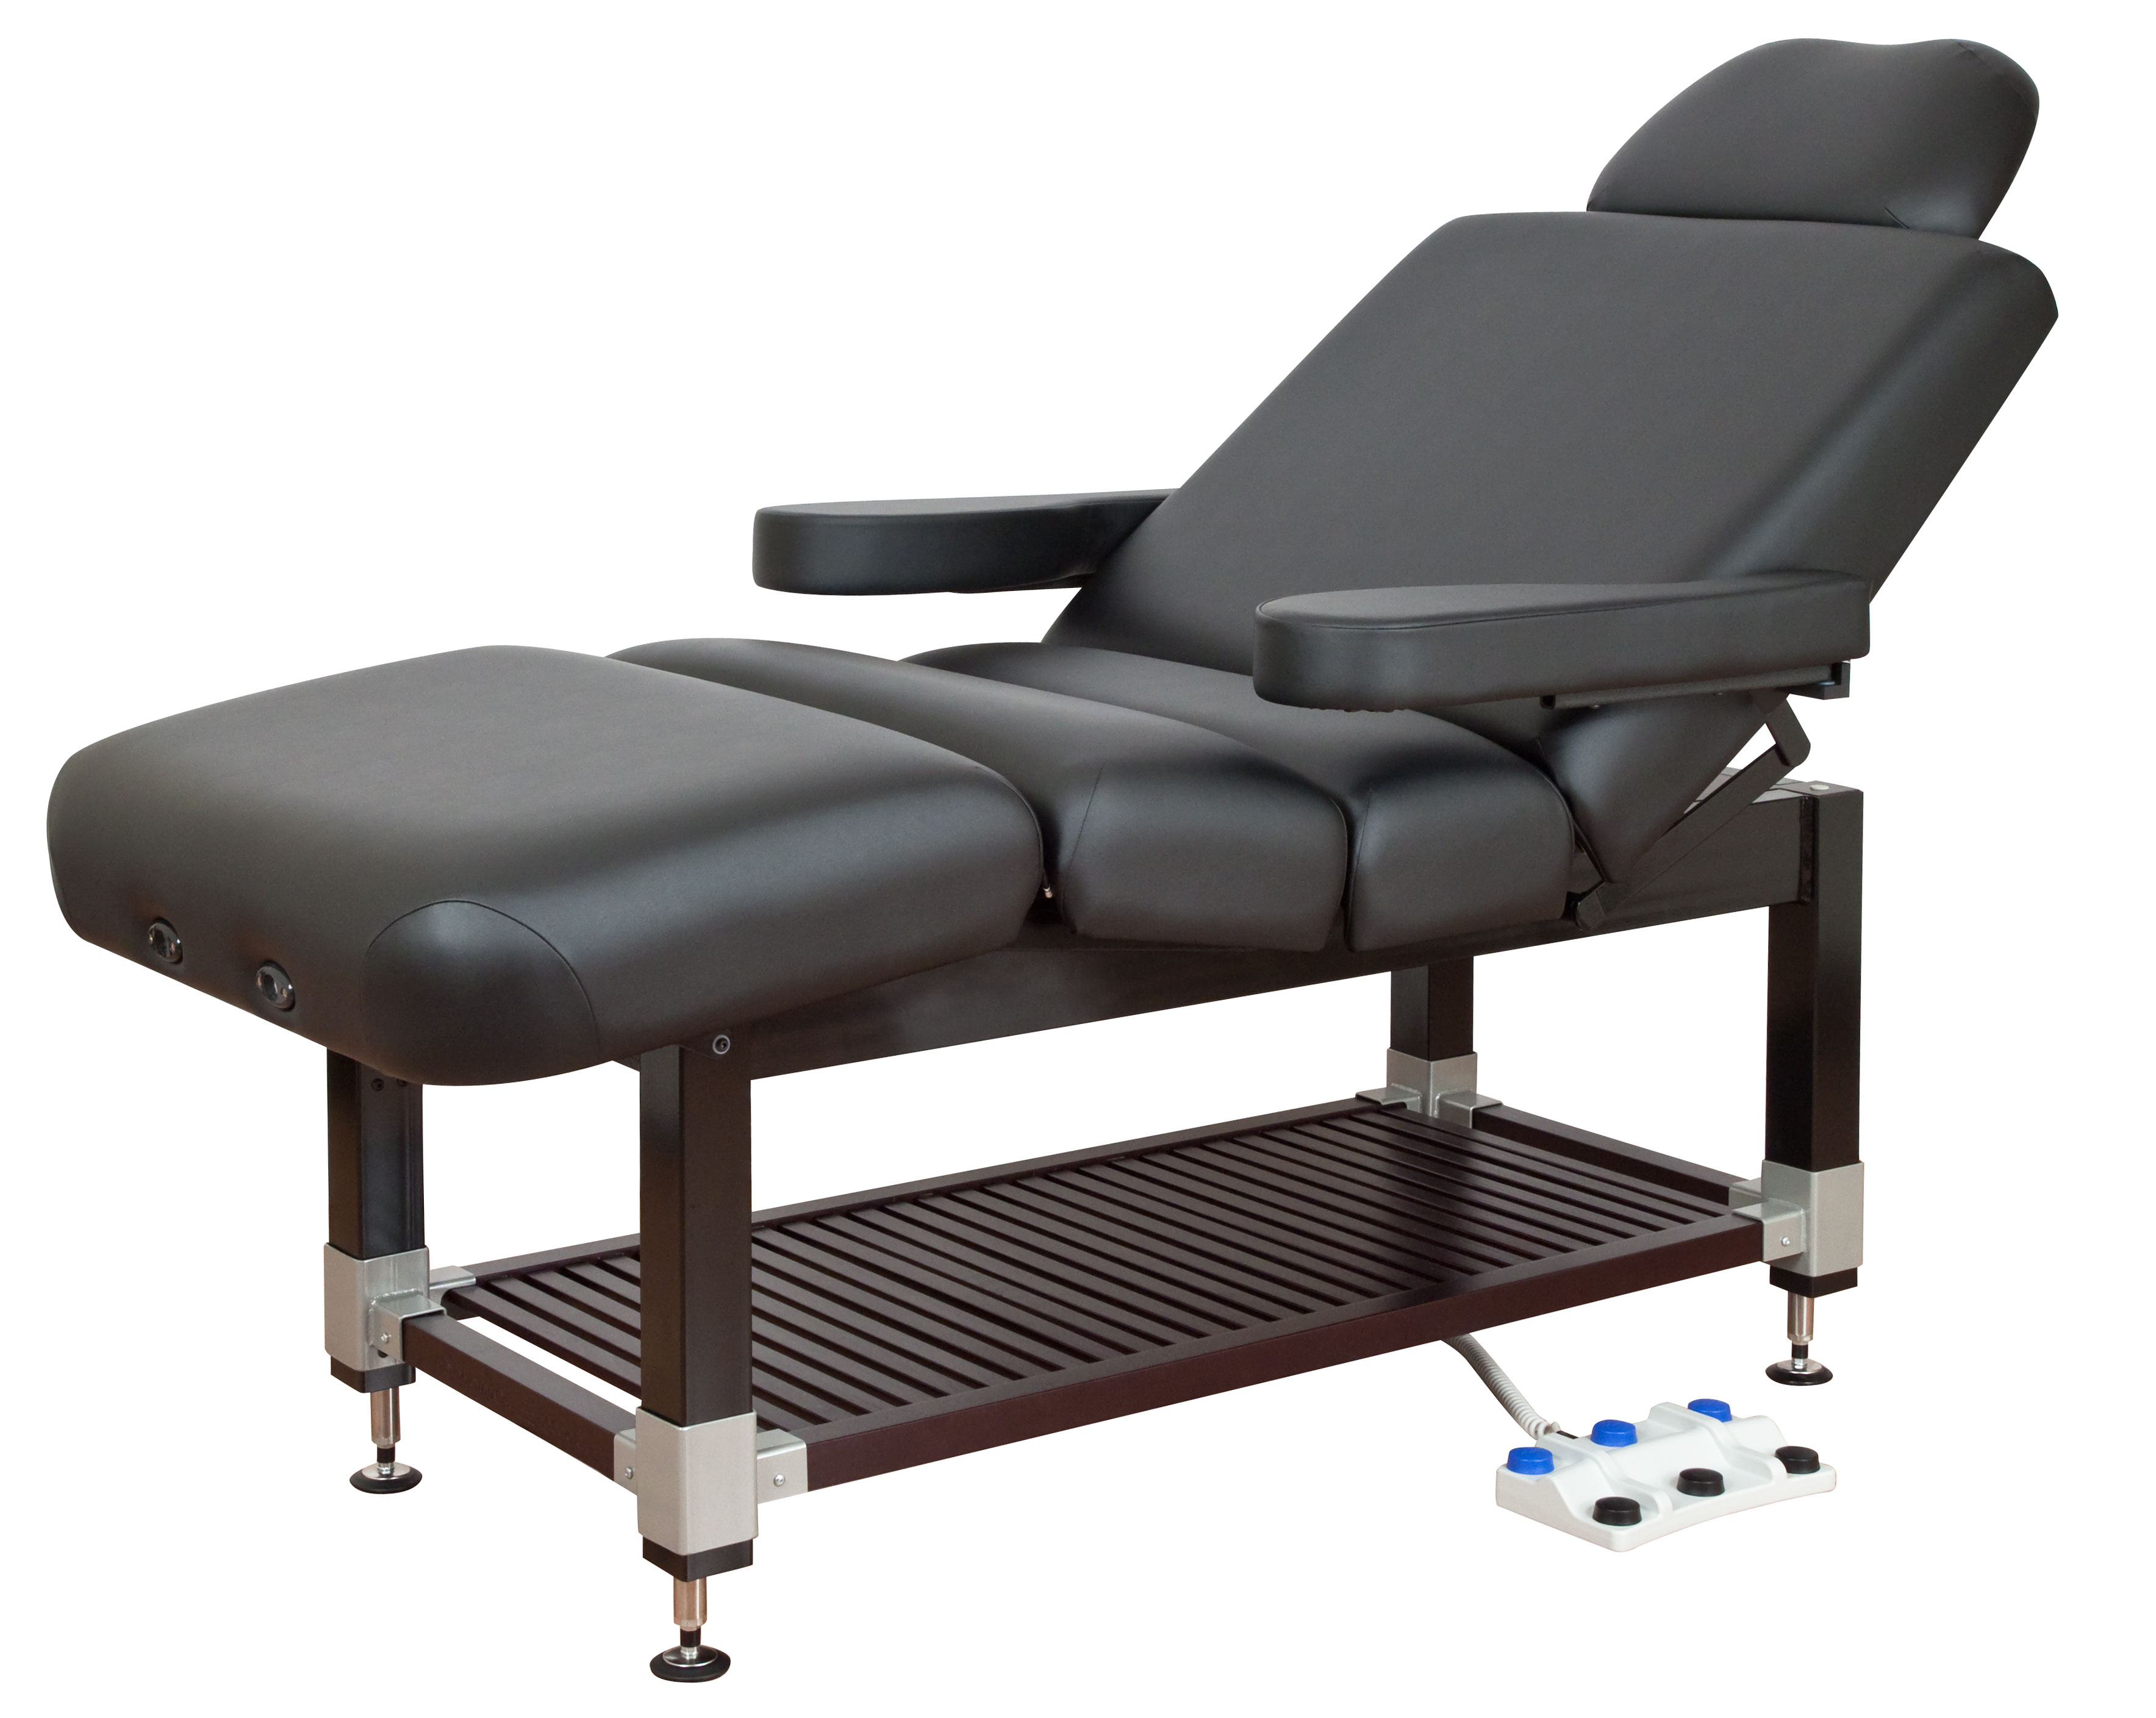 Clodagh leo massage tables massage beds spa tables for True touch massage experience luxury spa chair